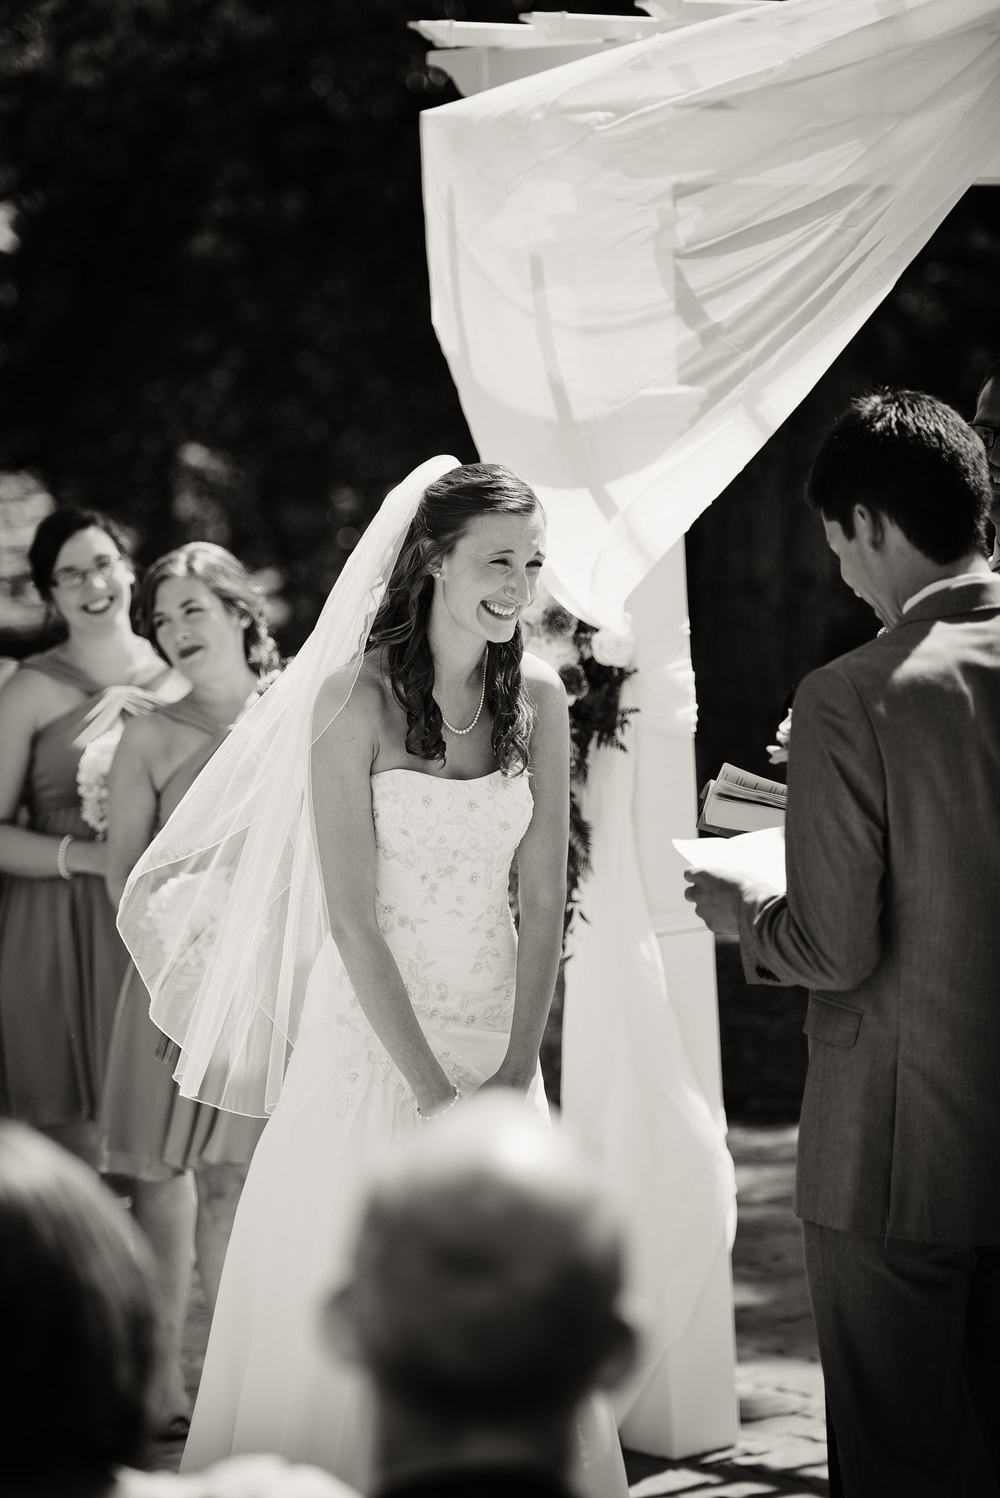 groom bride sunshine daytime wedding ceremony vows laughter bw portrait THPHOTO